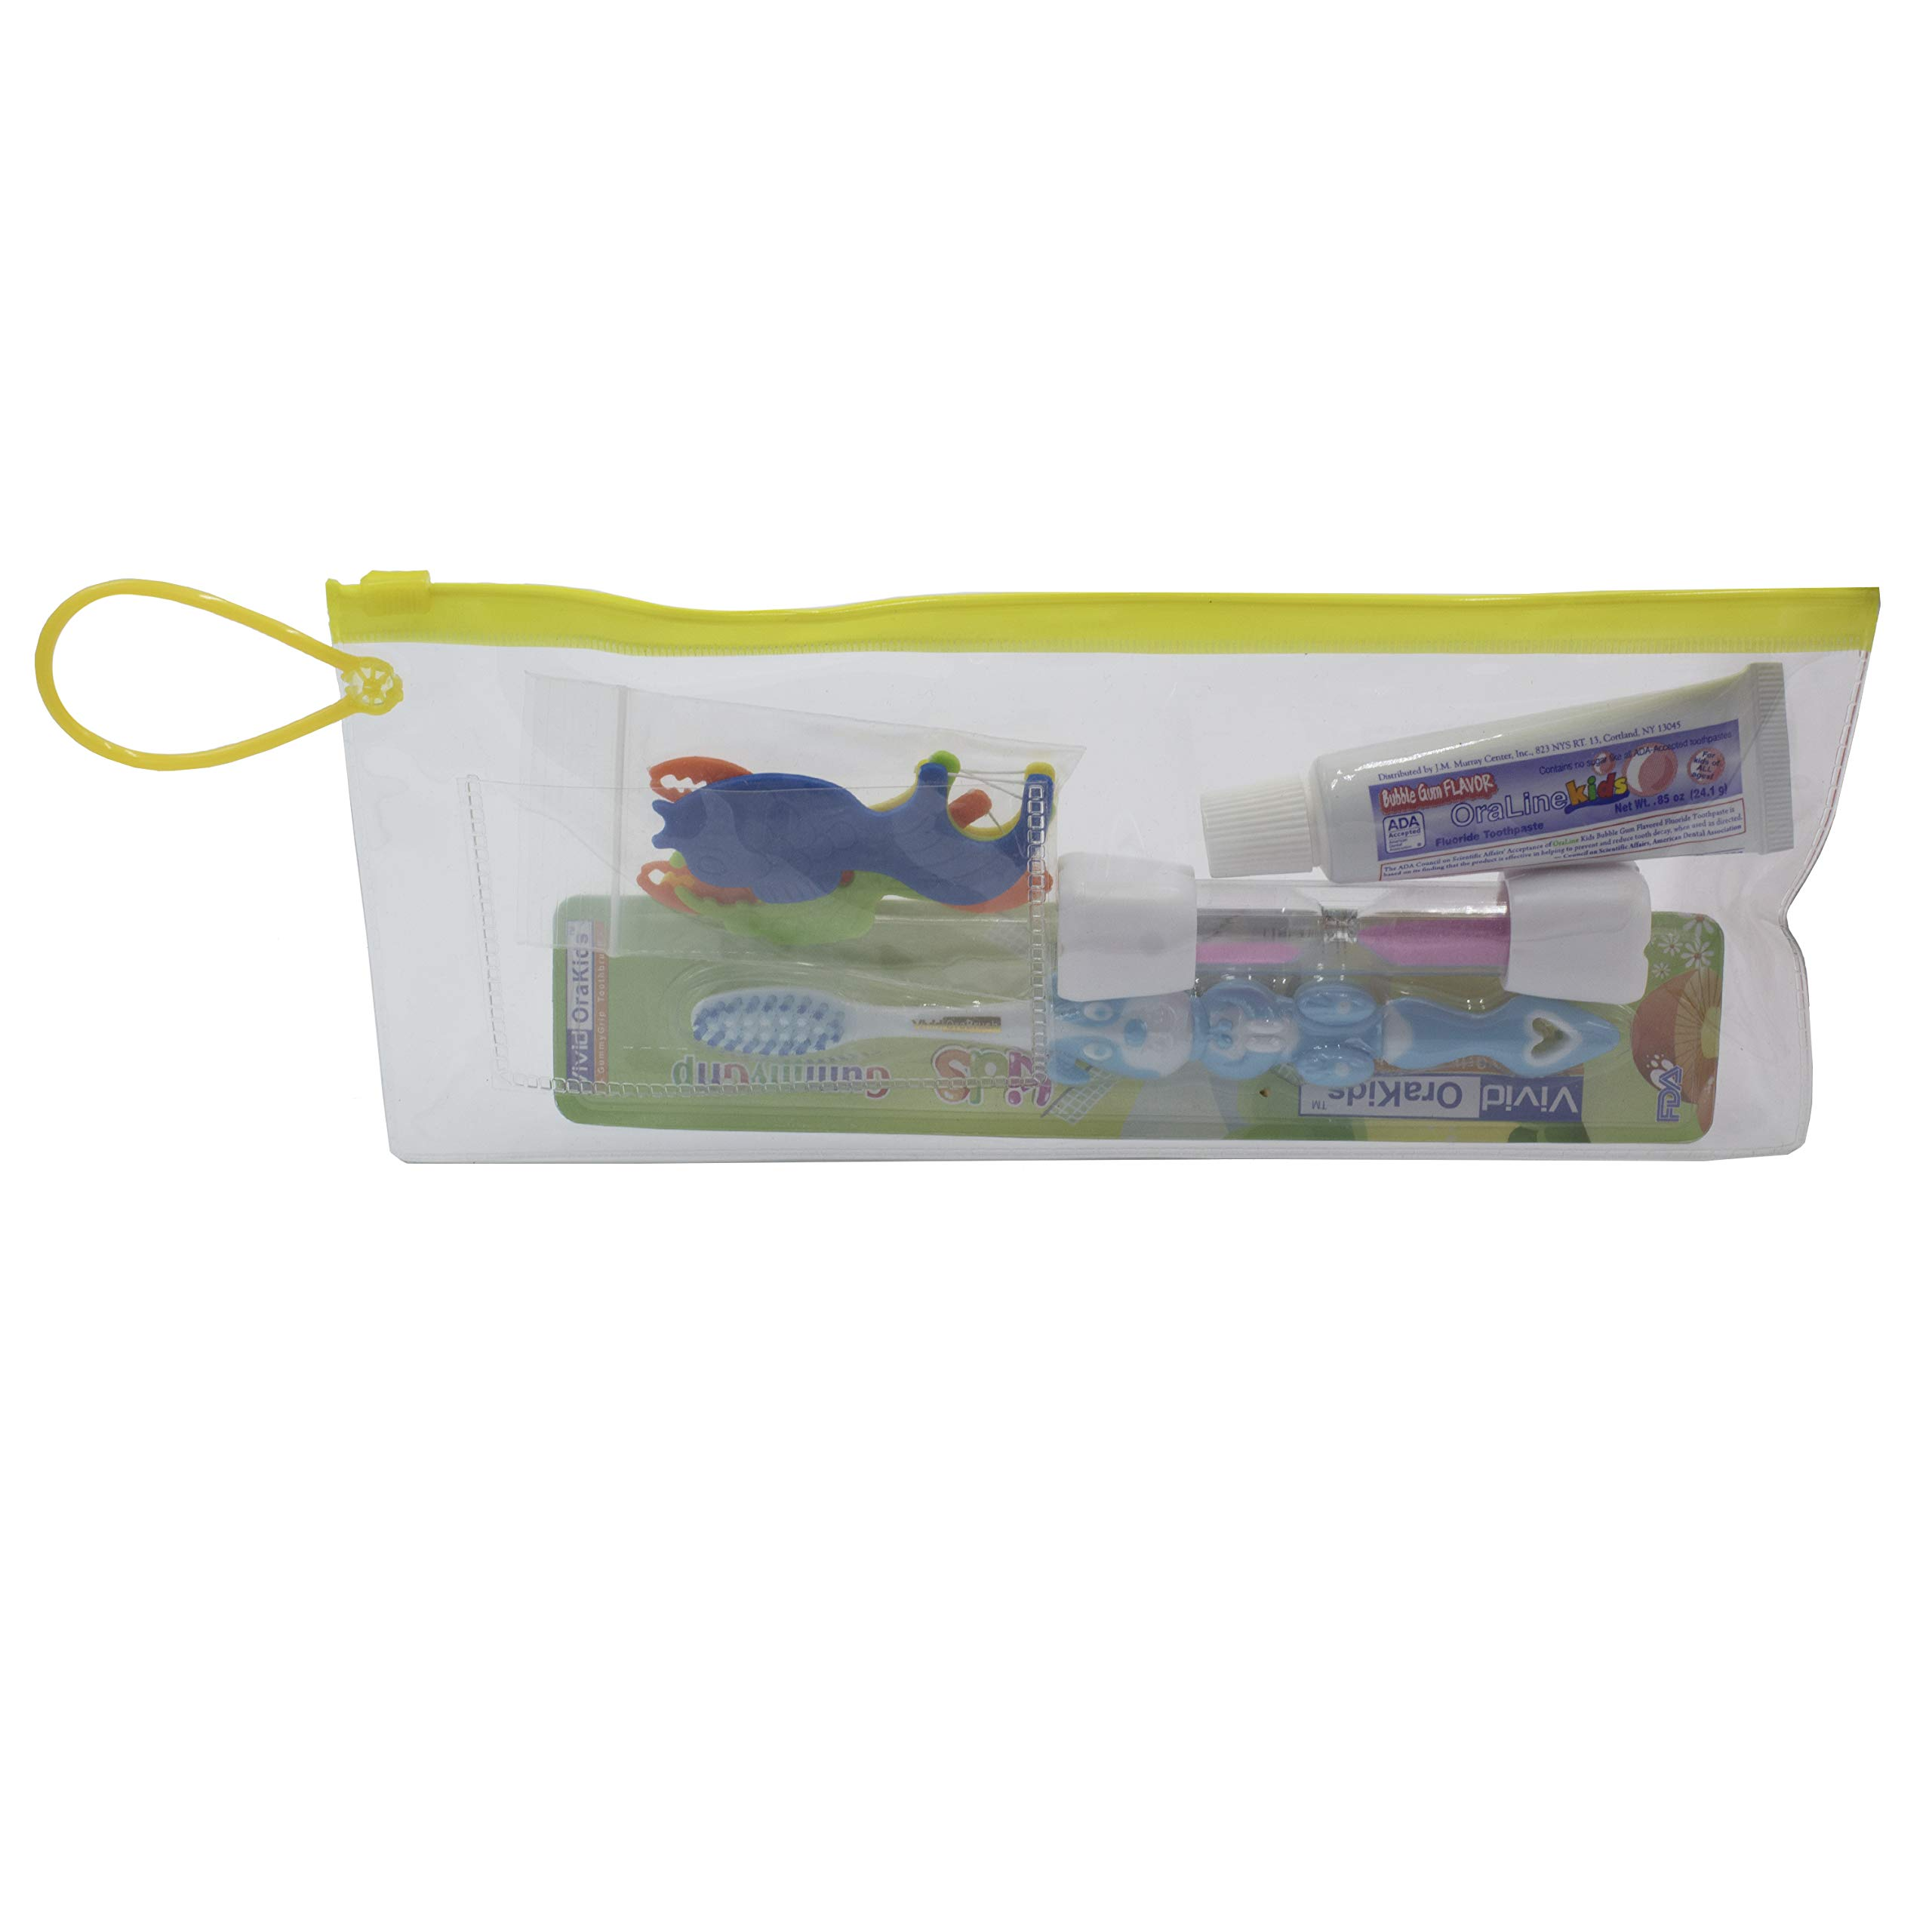 Dental Patient Giveaway or Travel Kit, Container zipper color may vary between Yellow, Pink, Blue, Green OR Red Color (Kids, Pack of 30)